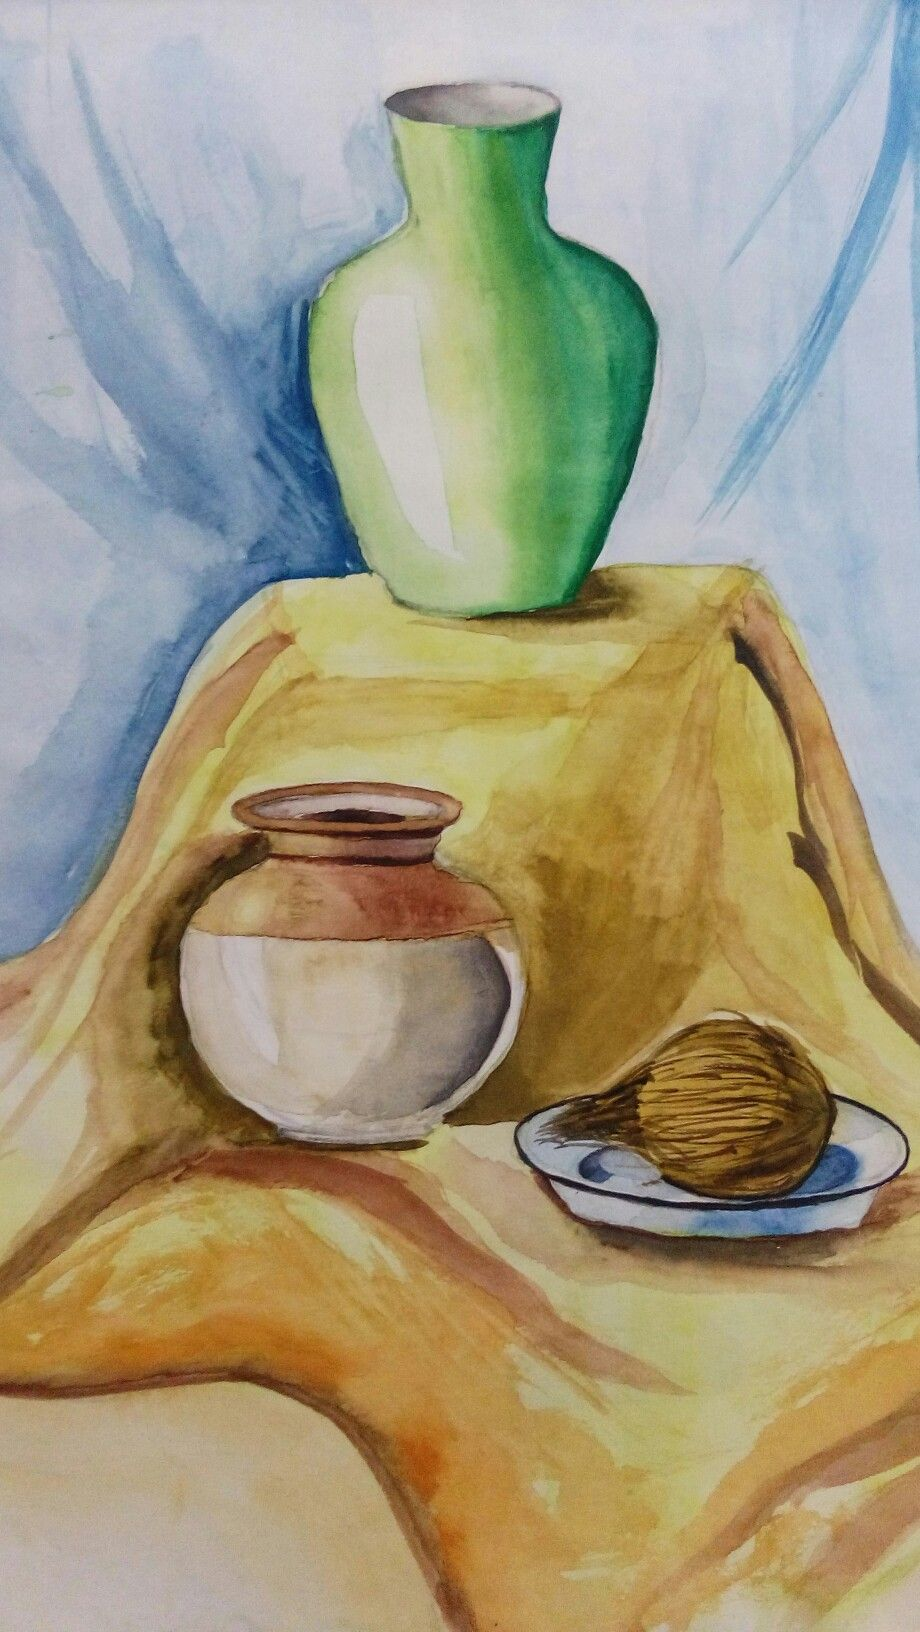 By Avani Sathe With Images Watercolor Paintings For Beginners